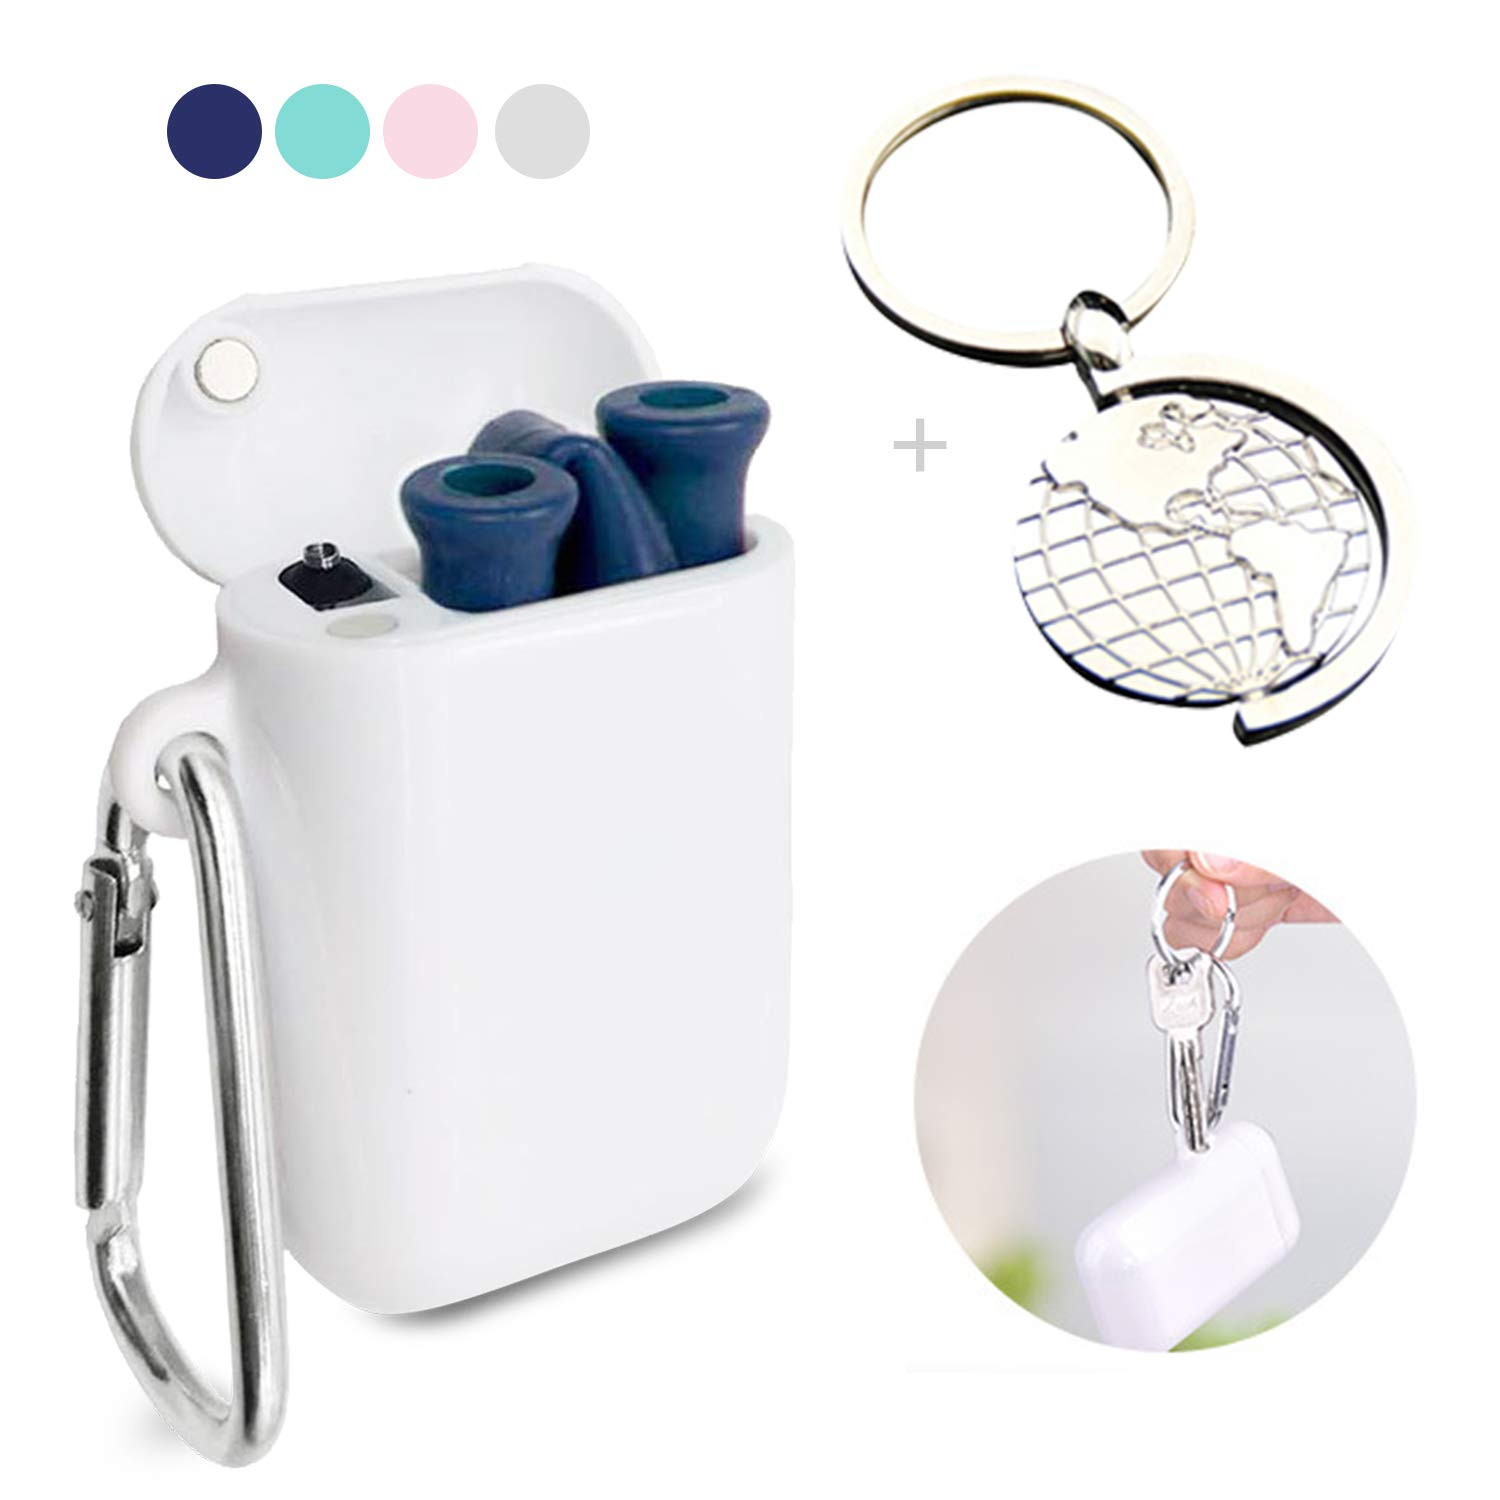 Foldable Reusable Straws with Keychain Collapsible Straw with Case Silicon Straws pba Free for Smoothie/Cocktail - Blue